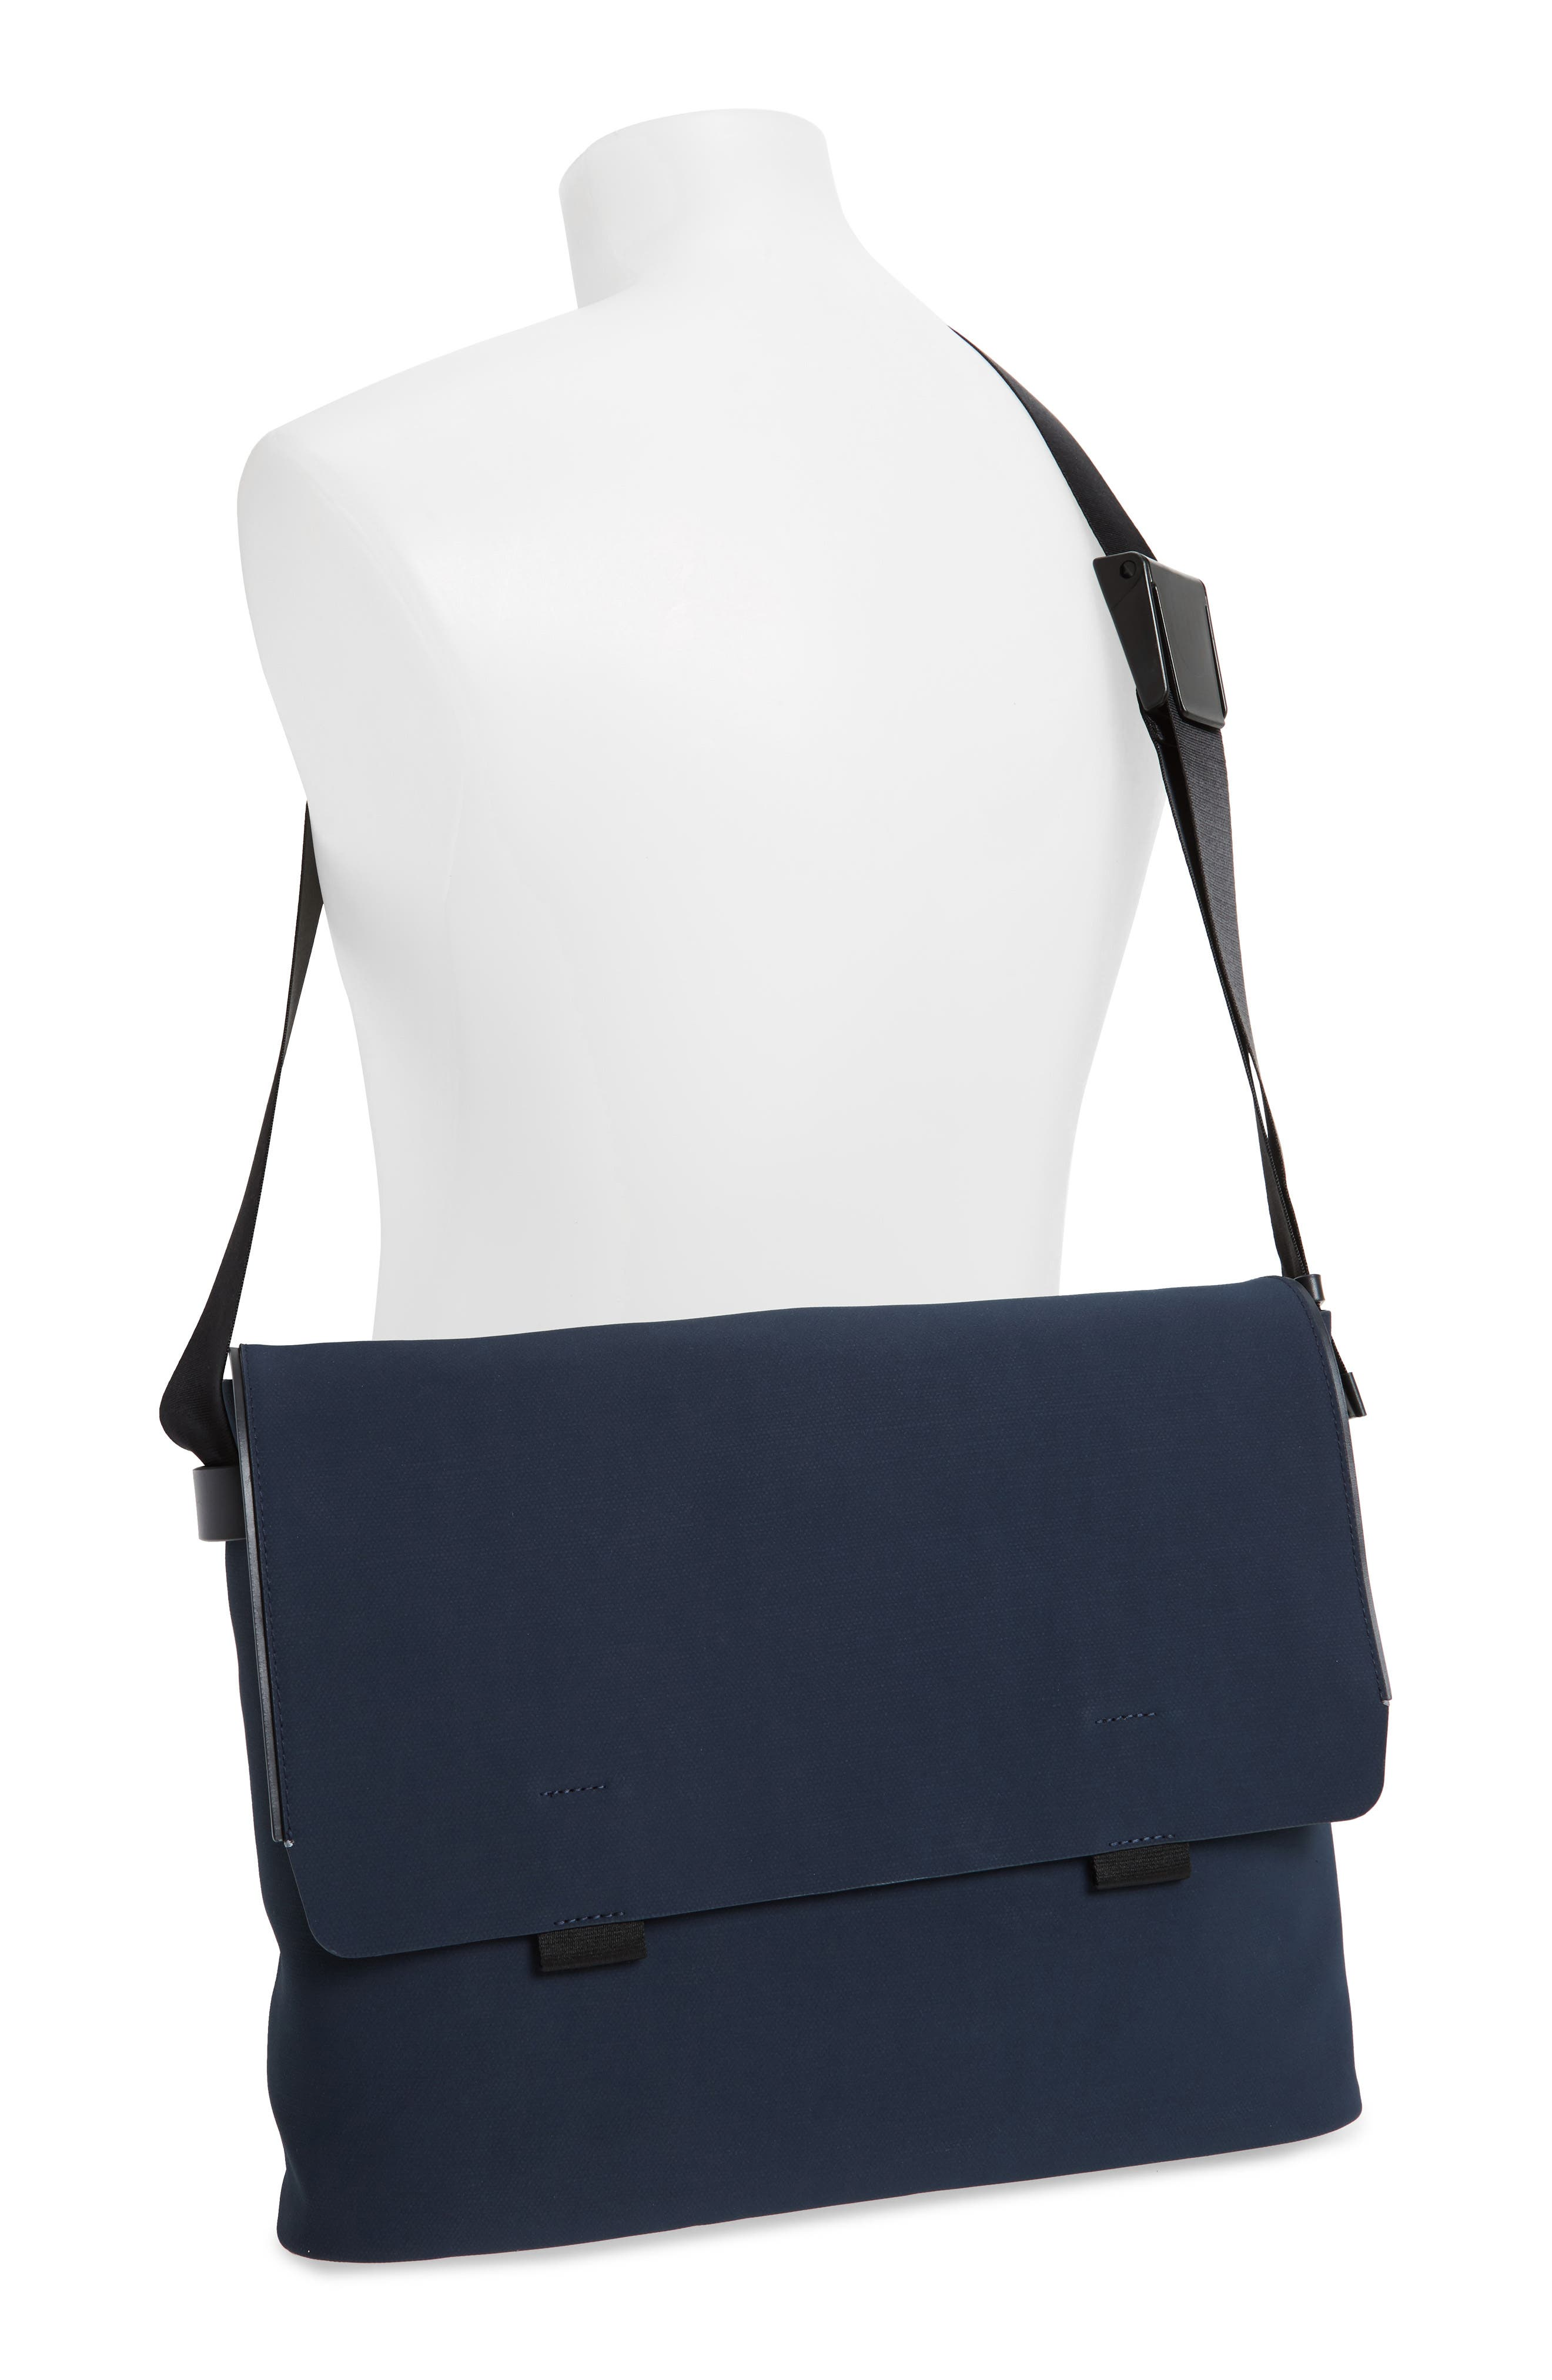 Canvas Messenger Bag,                             Alternate thumbnail 2, color,                             Navy Canvas/ Navy Leather